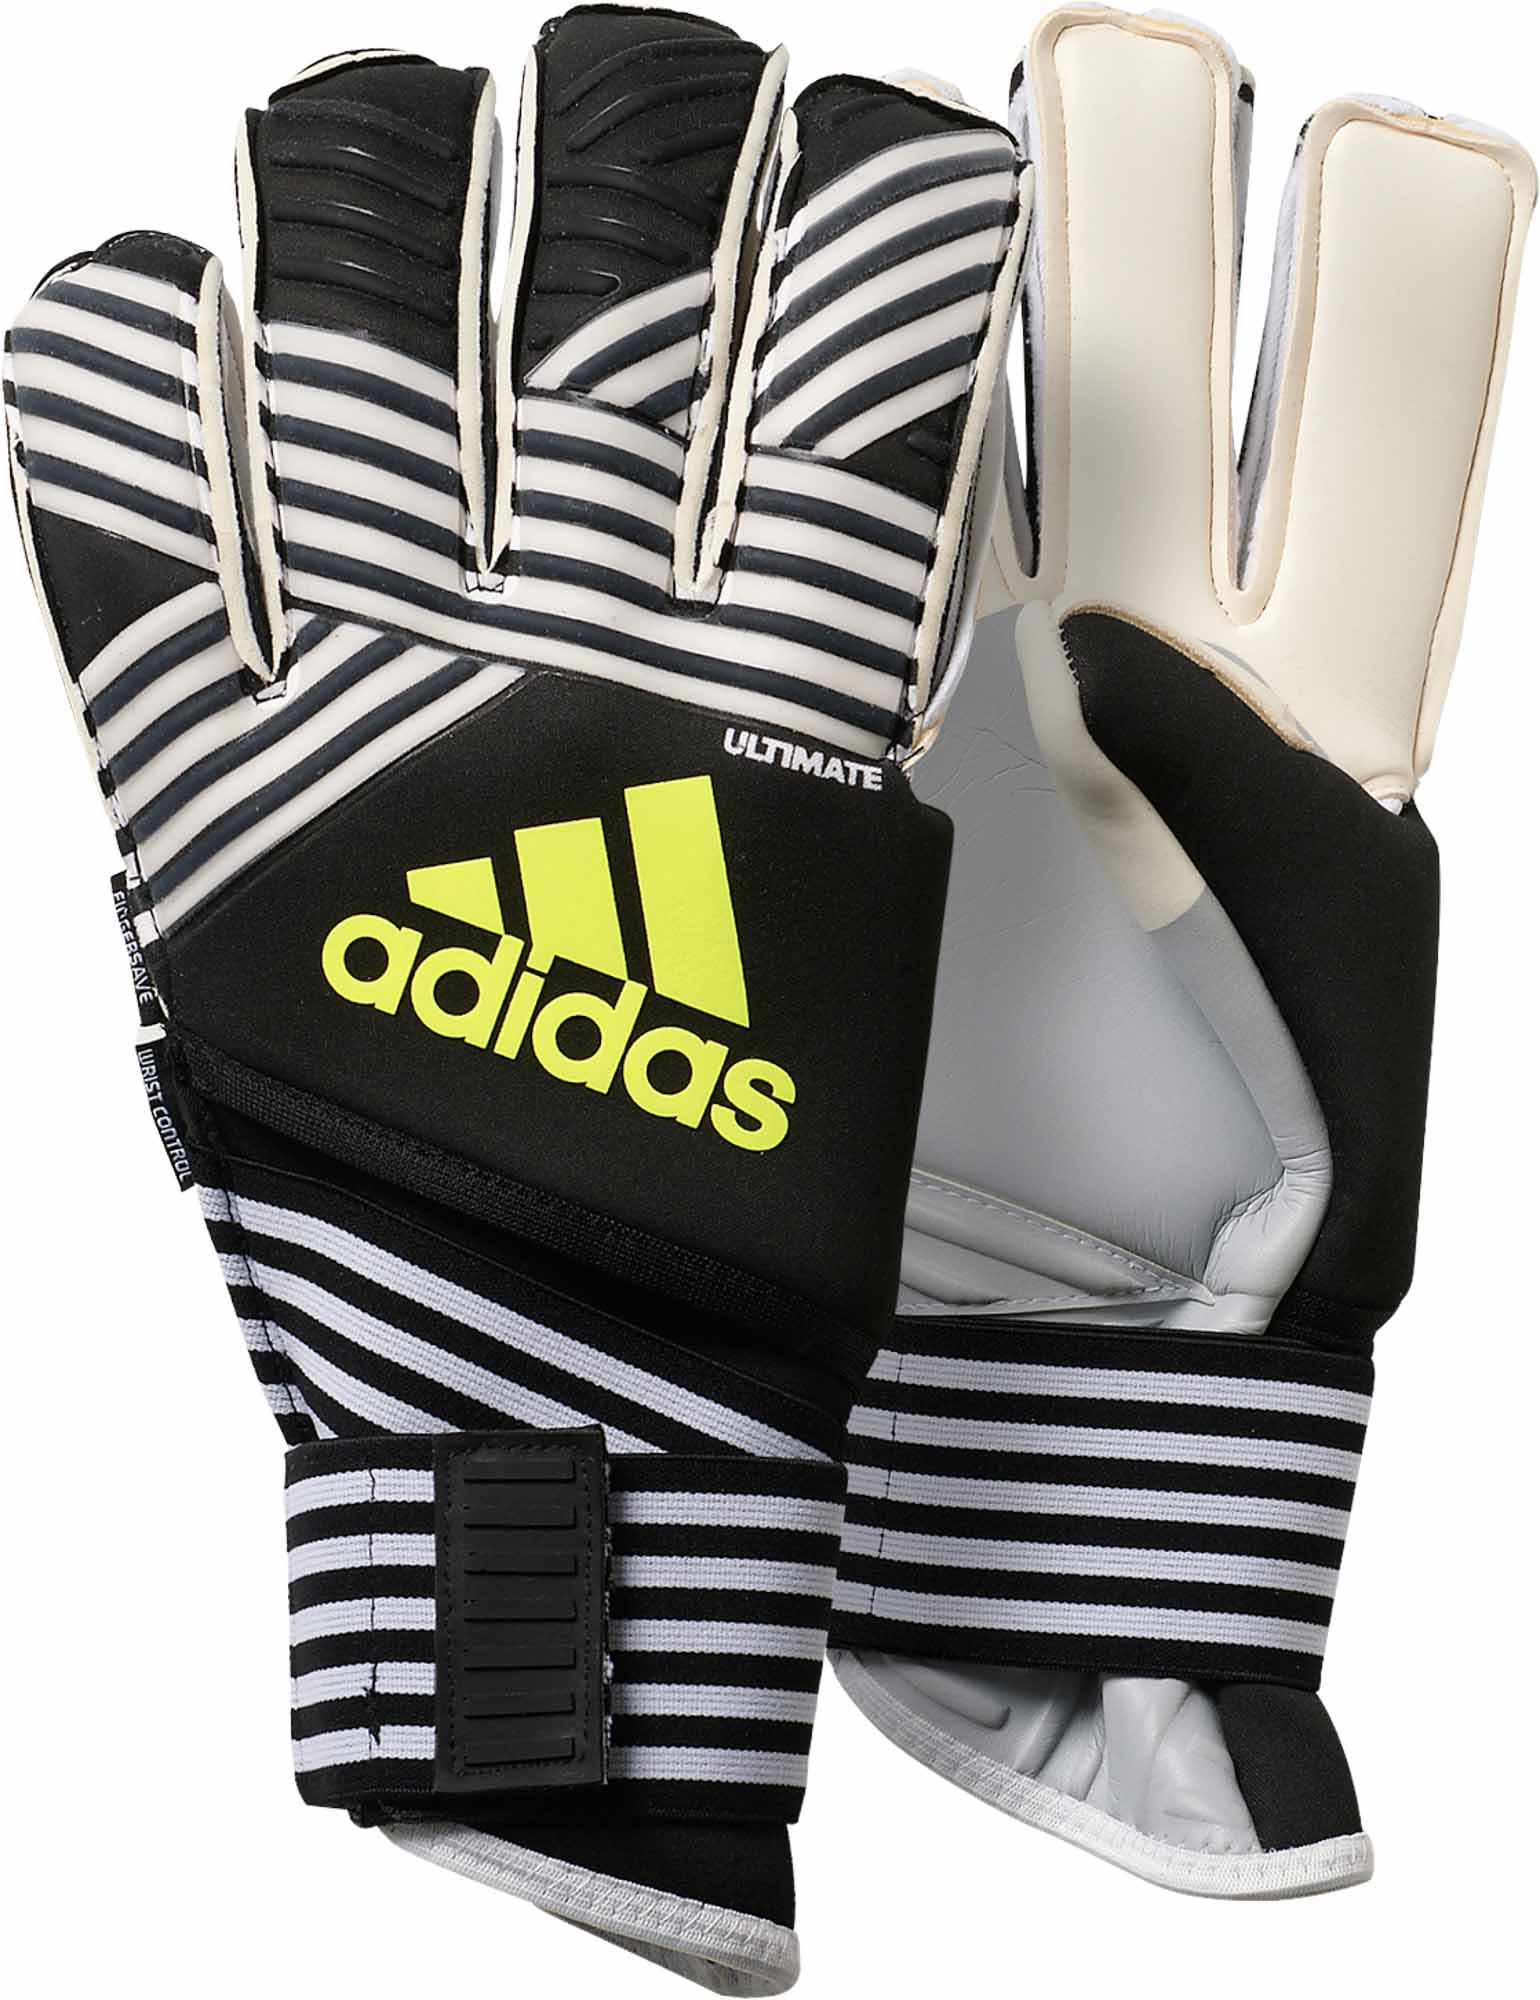 adidas ace trans ultimate